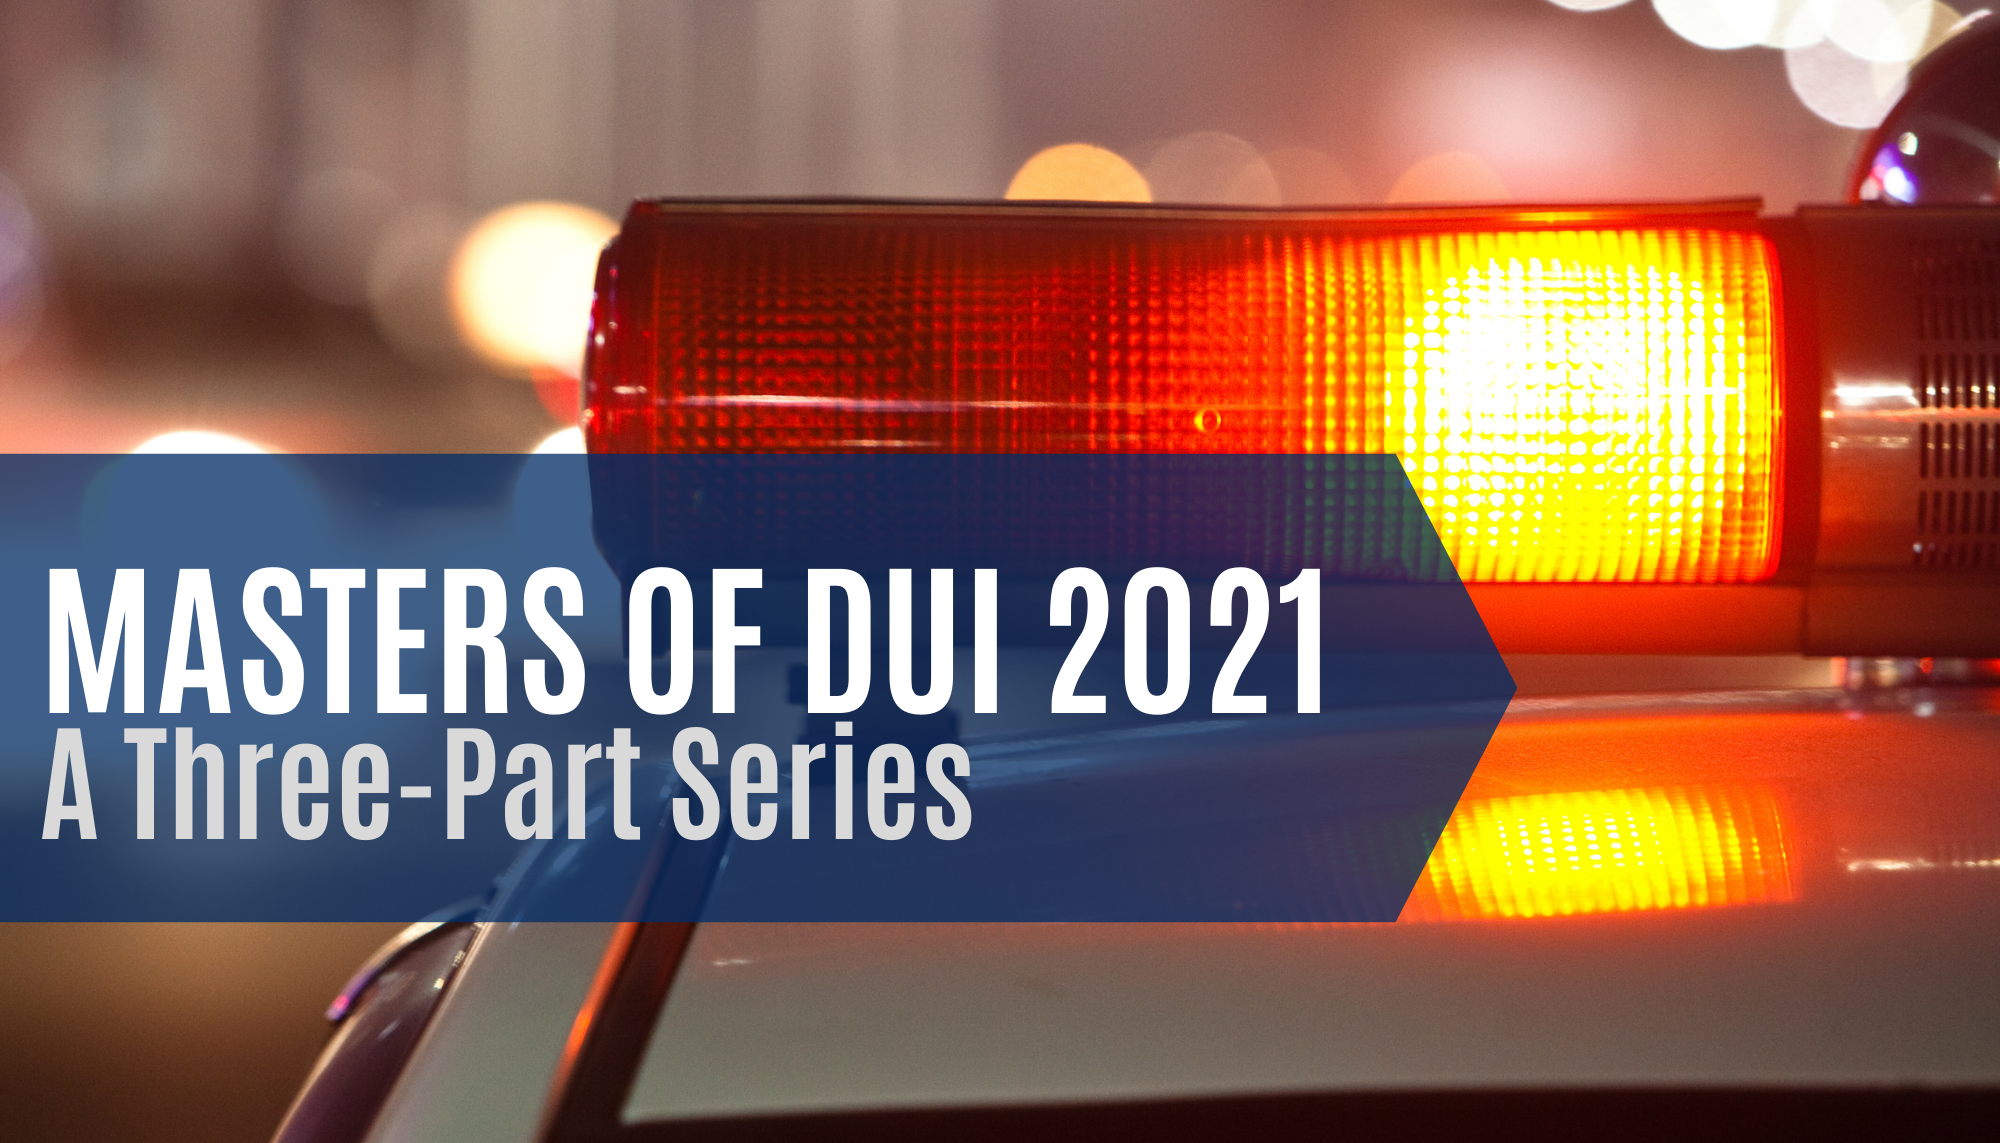 Masters of DUI 2021